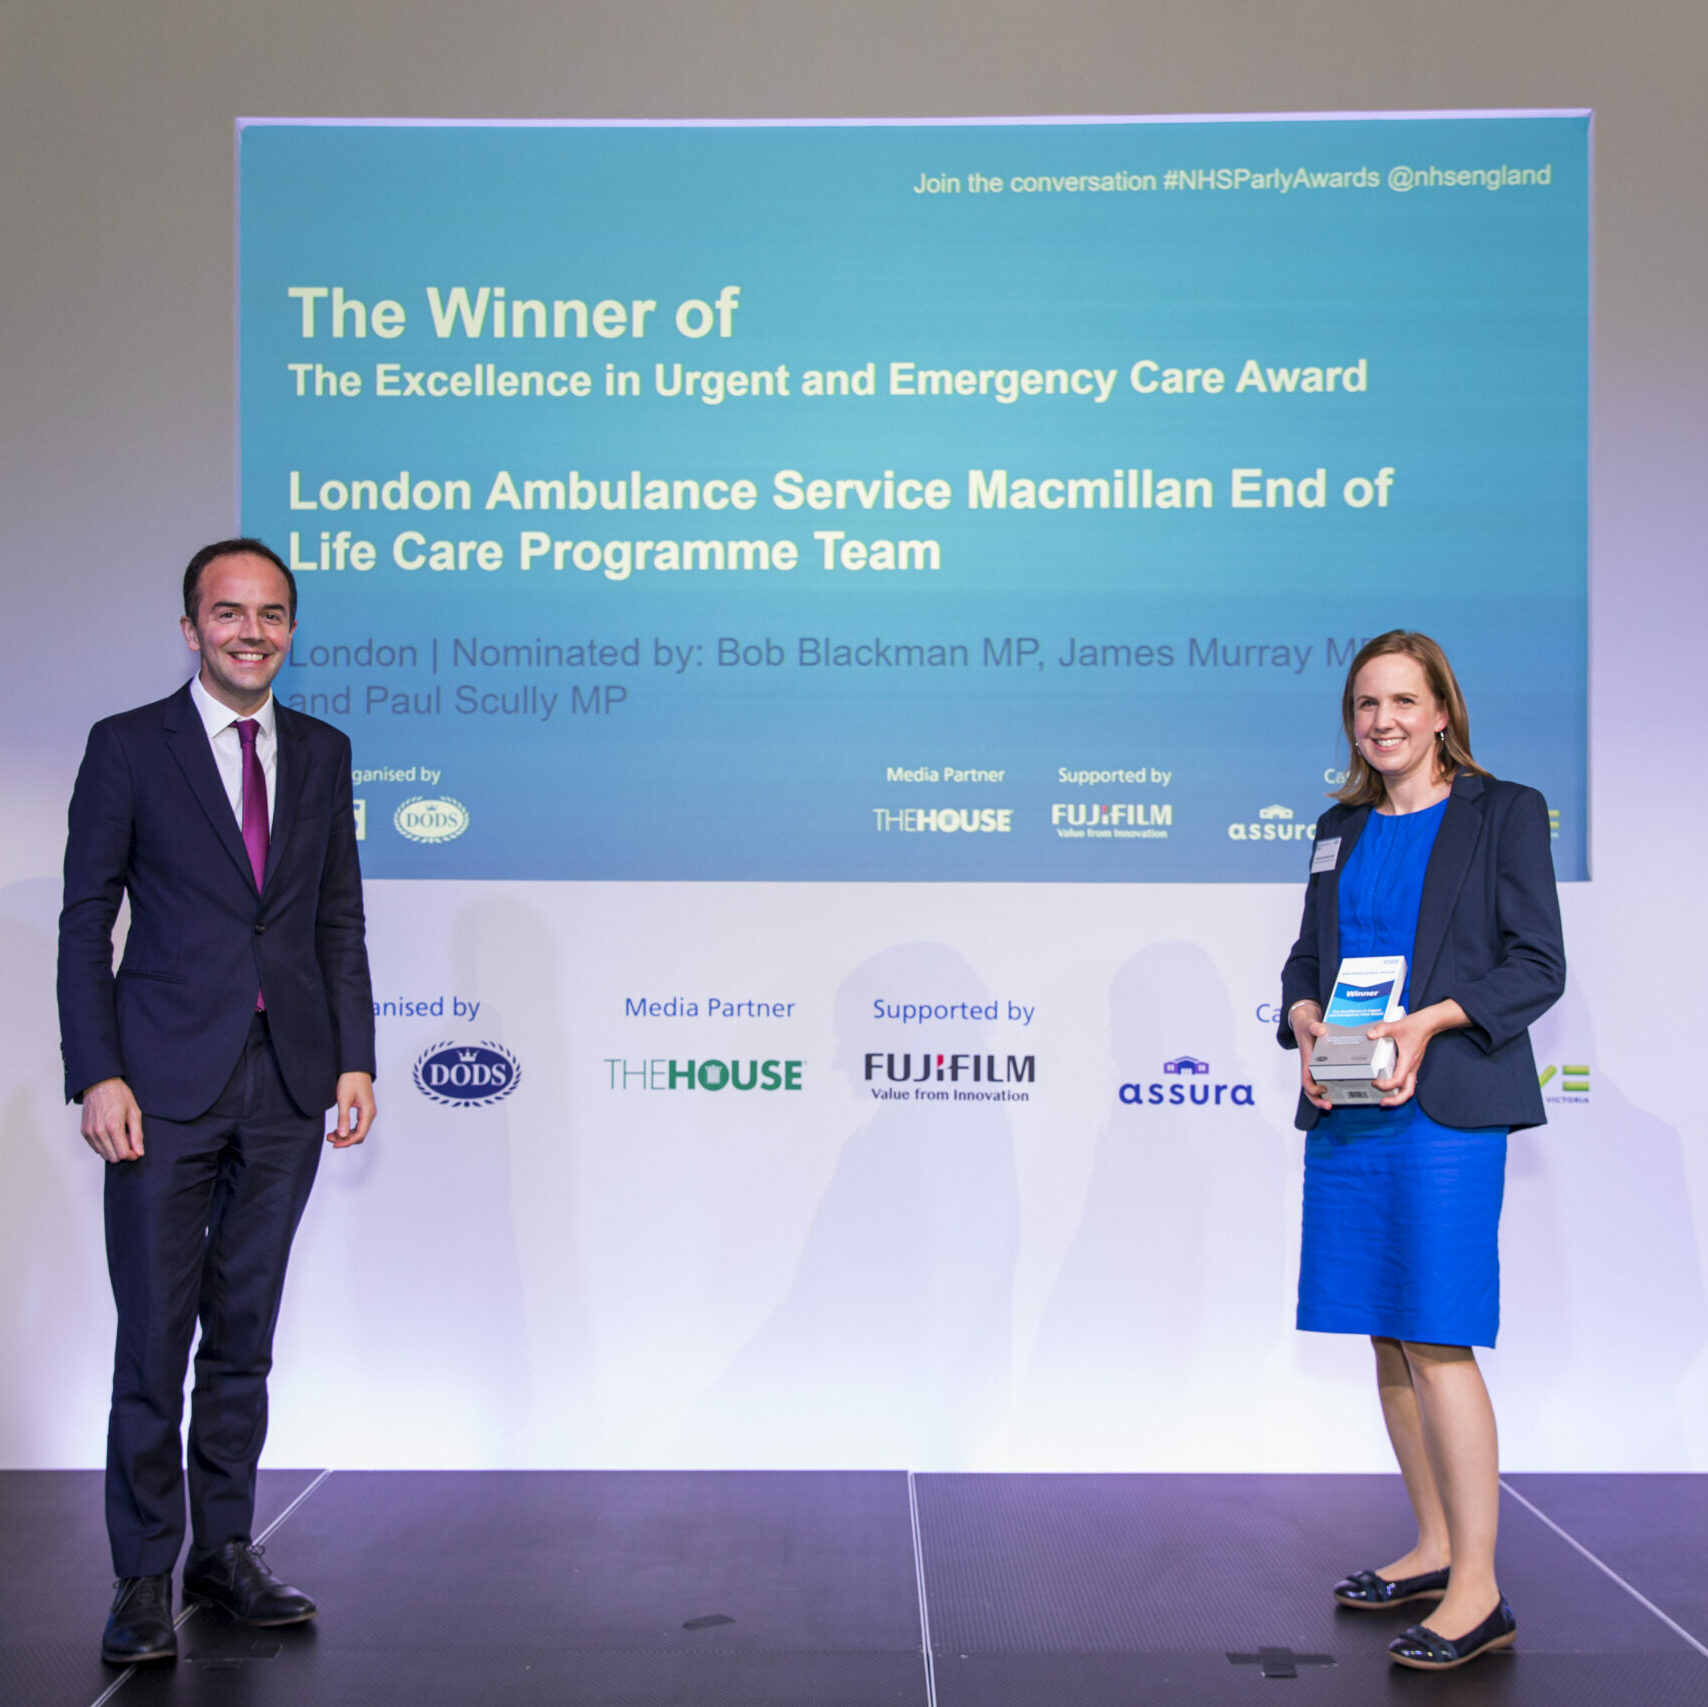 A member of the London Ambulance Service Macmillan End of Life Care Programme Team is stood on stage receiving their Excellence in Urgent and Emergency Care Award